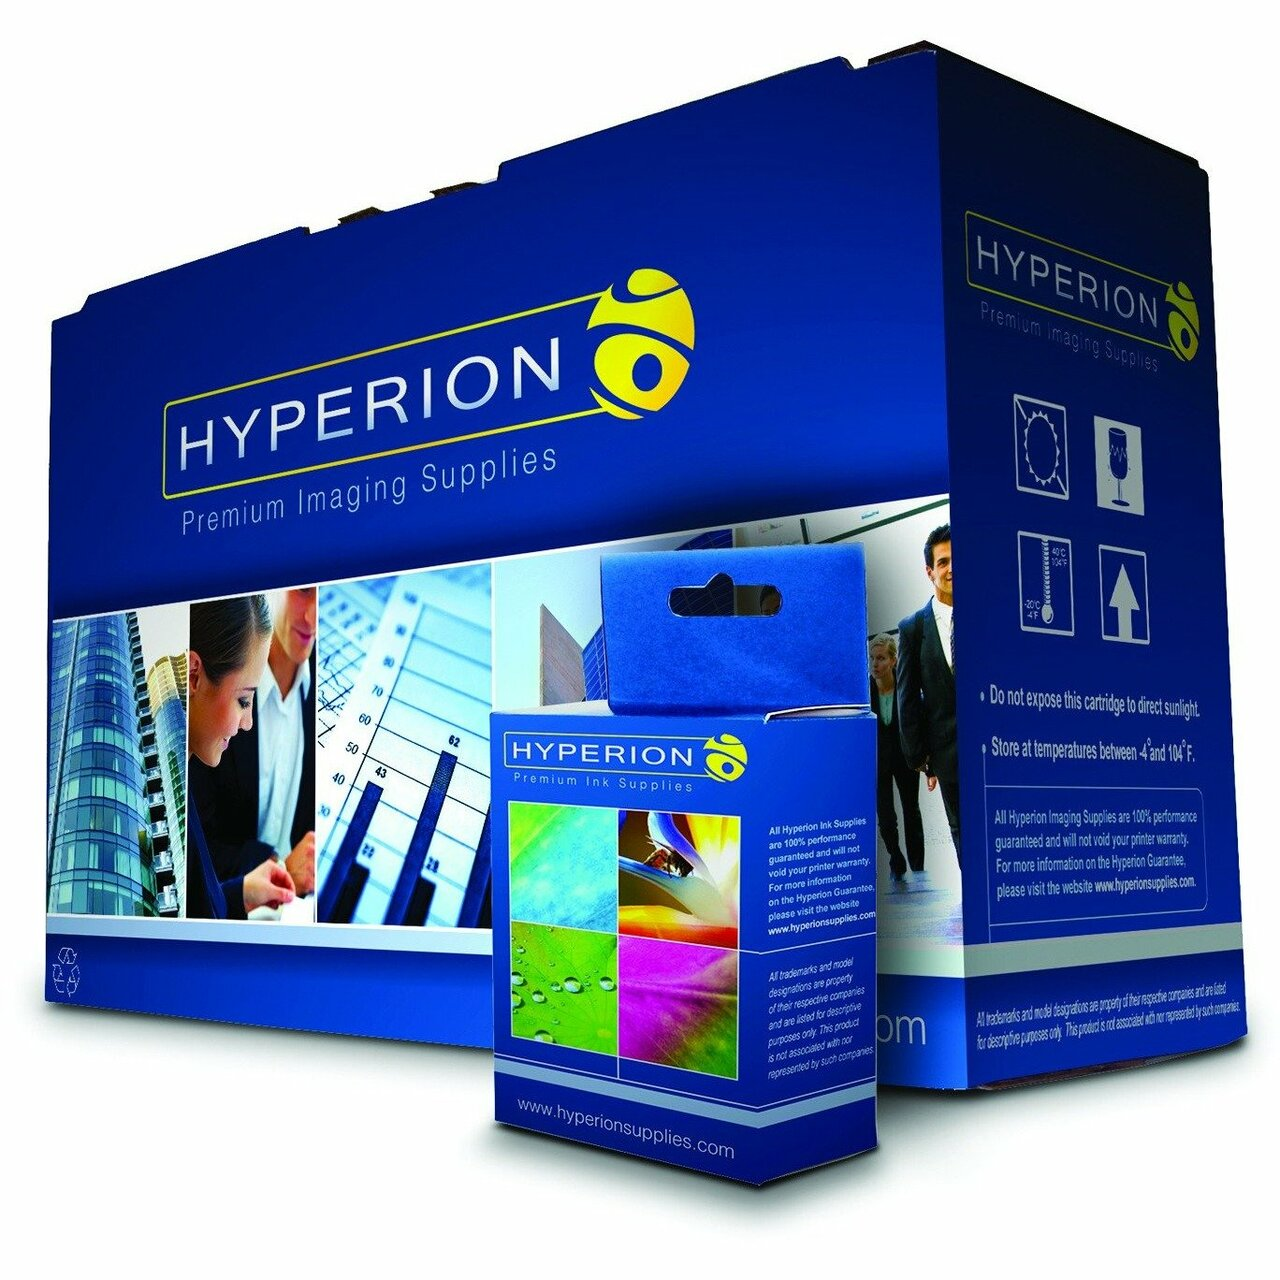 Hyperion Compatible T650H21A Print Cartridge